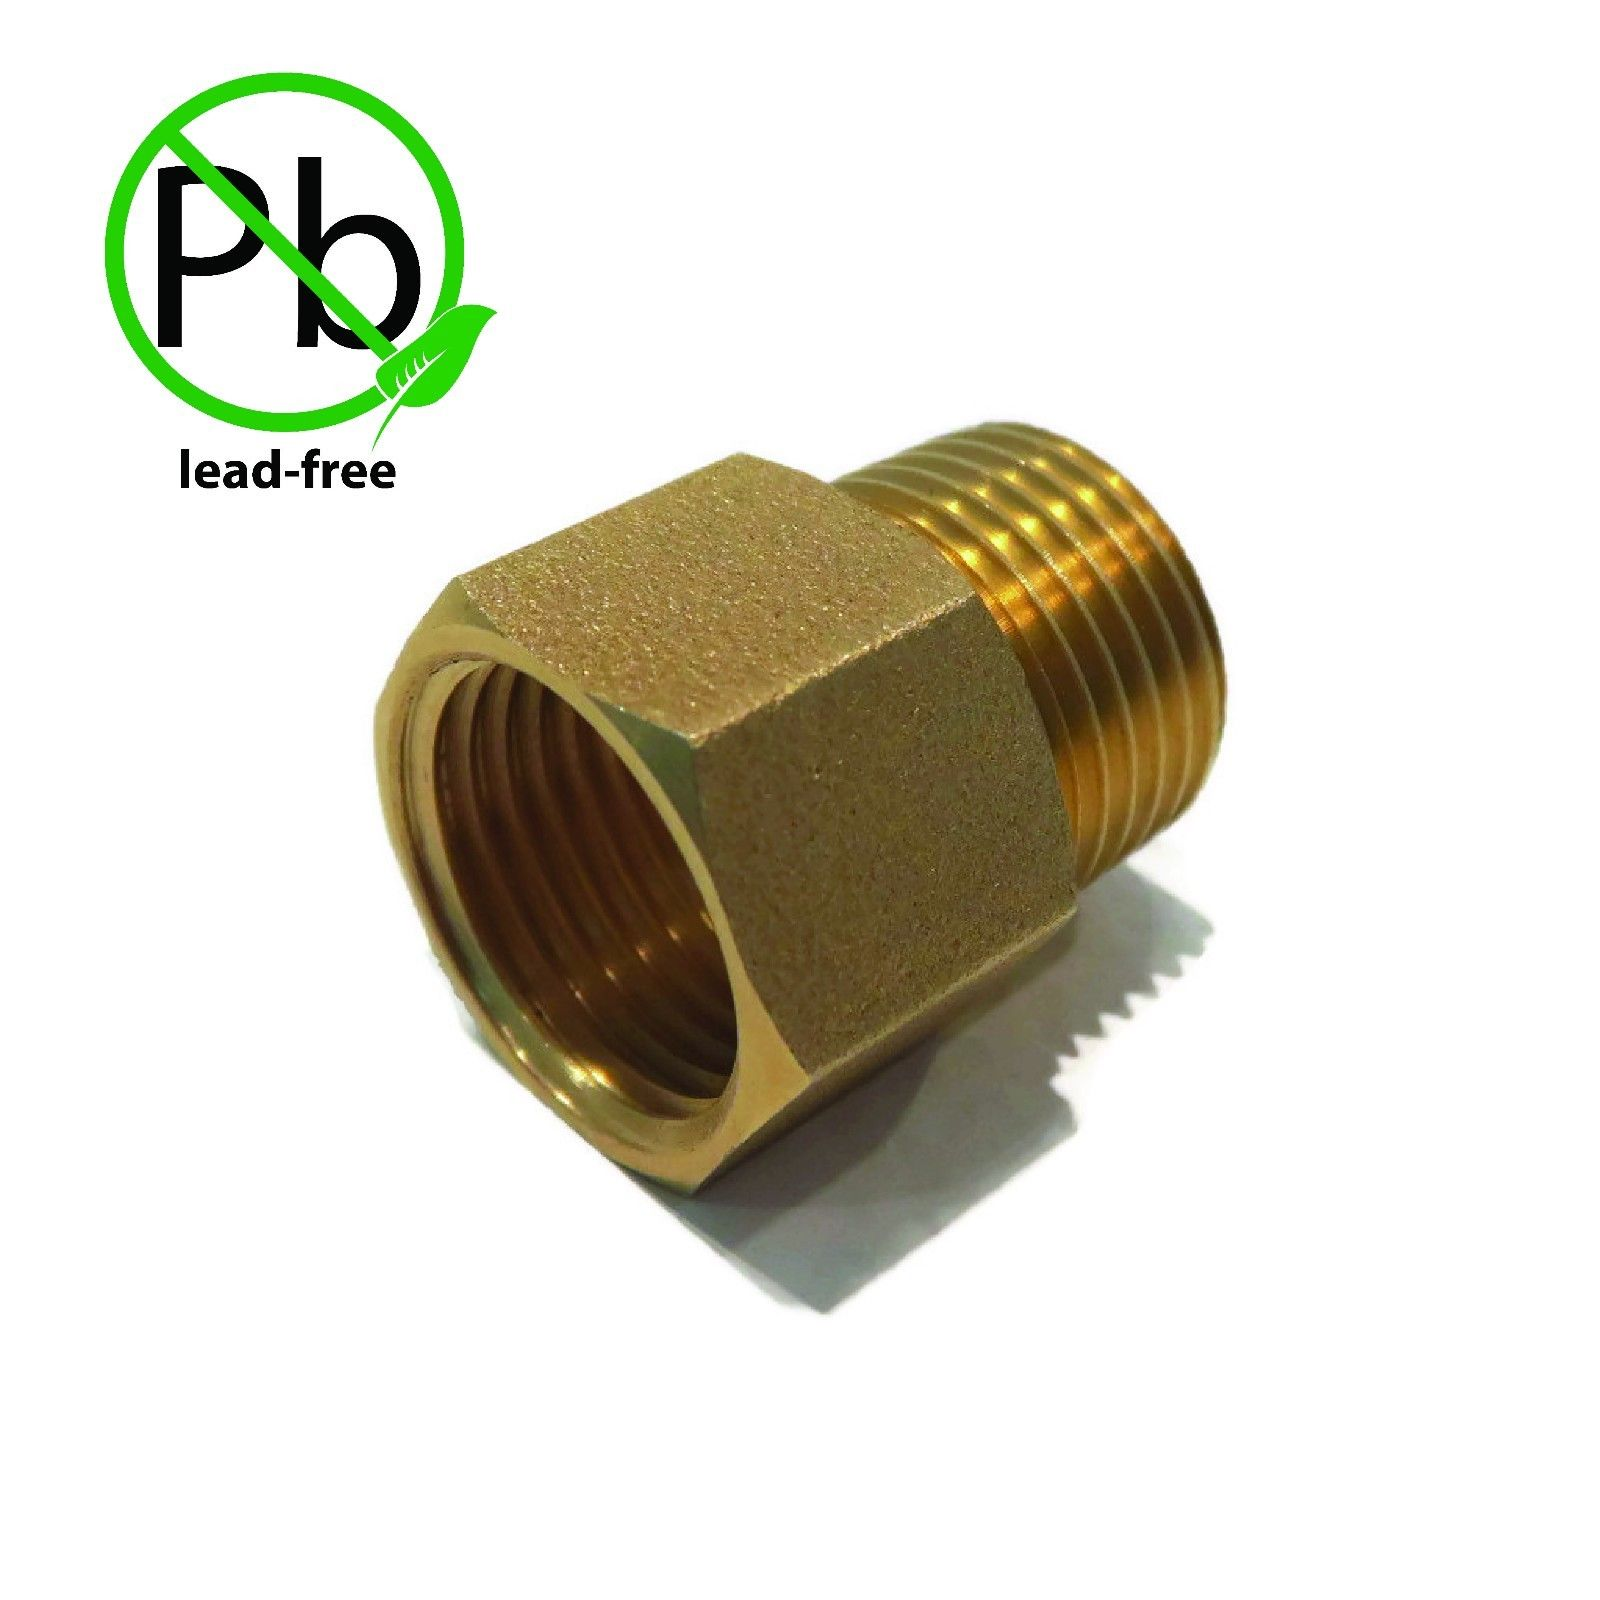 "BRASS LEAD FREE STRAIGHT PIPE FITTING ADAPTER 1/2"" MALE NPT x 1/2"" FEMALE NPT by The ROP Shop"